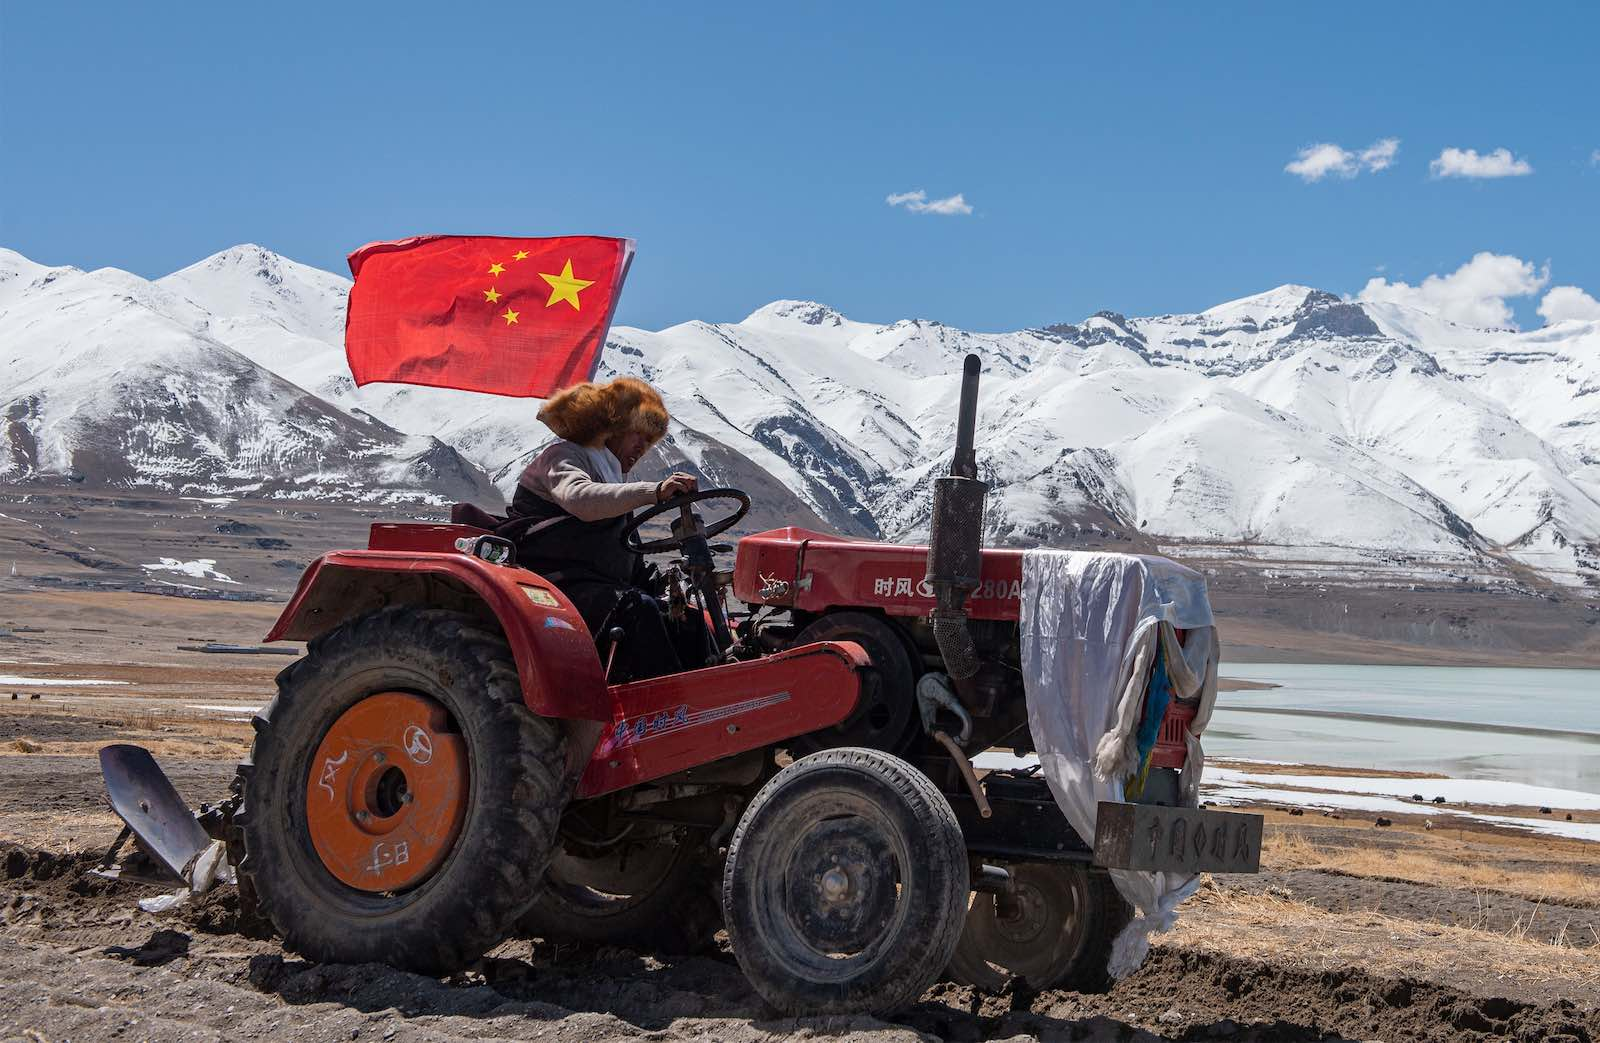 A farmer takes part in a ceremony marking the start of spring ploughing at Beicun Village in Ombu Township of Nyima County, Nagqu City, southwest China's Tibet Autonomous Region, April 2020 (Hou Jie/Xinhua via Getty Images)